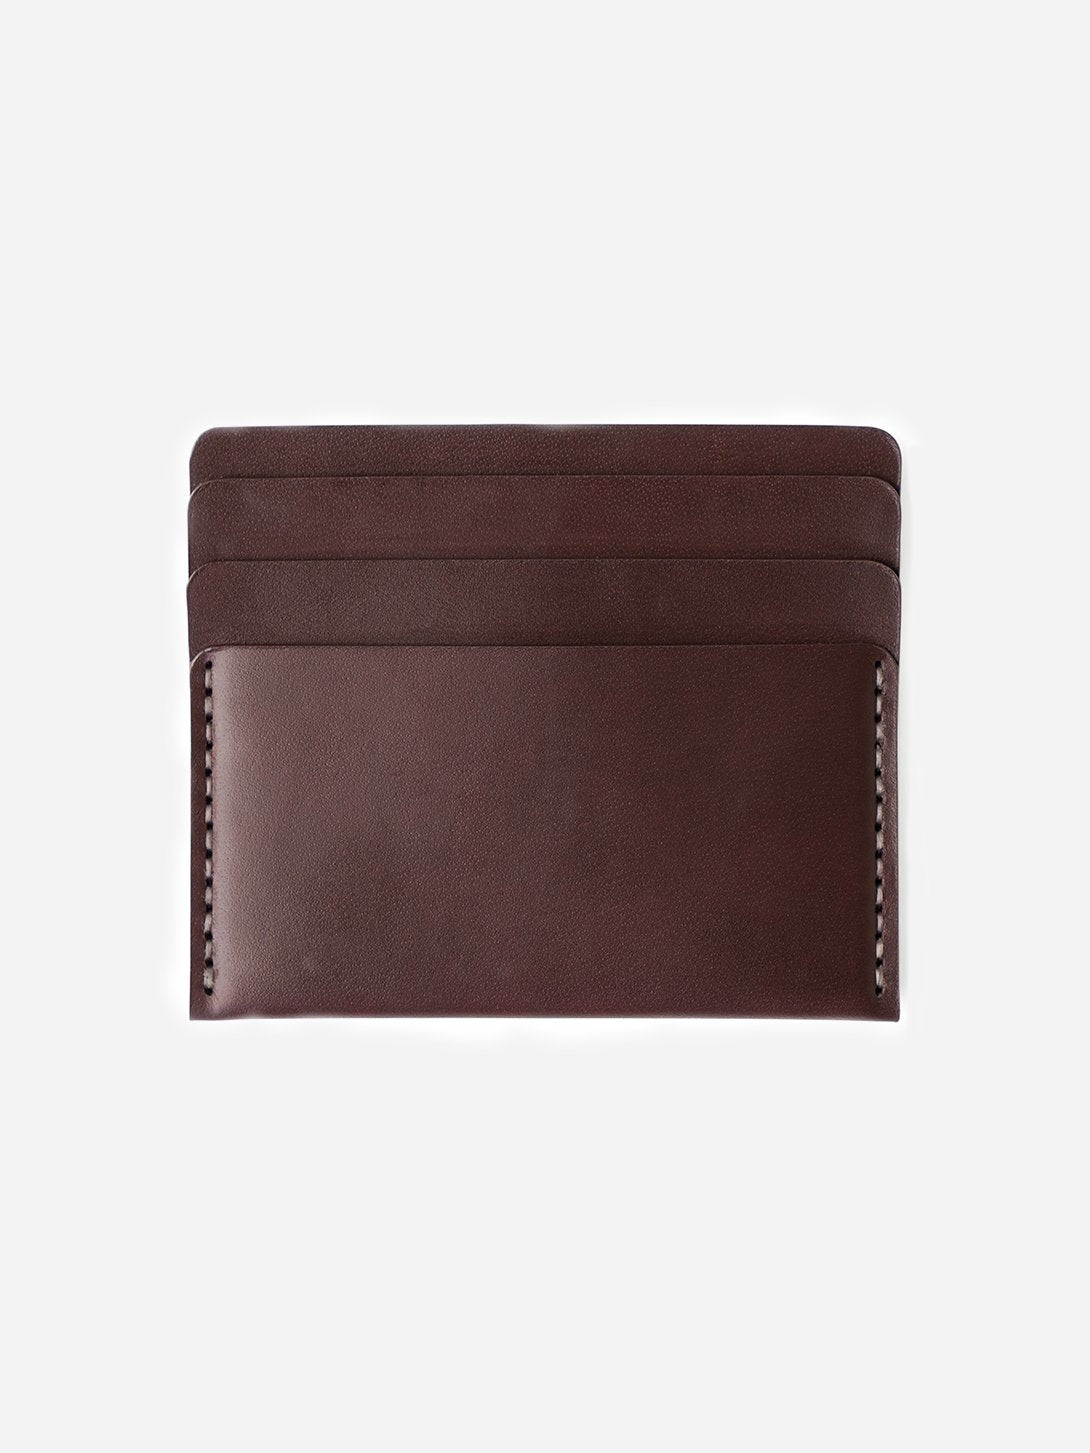 OX BLOOD mens card holder brown leather wallet cascade wallet makr